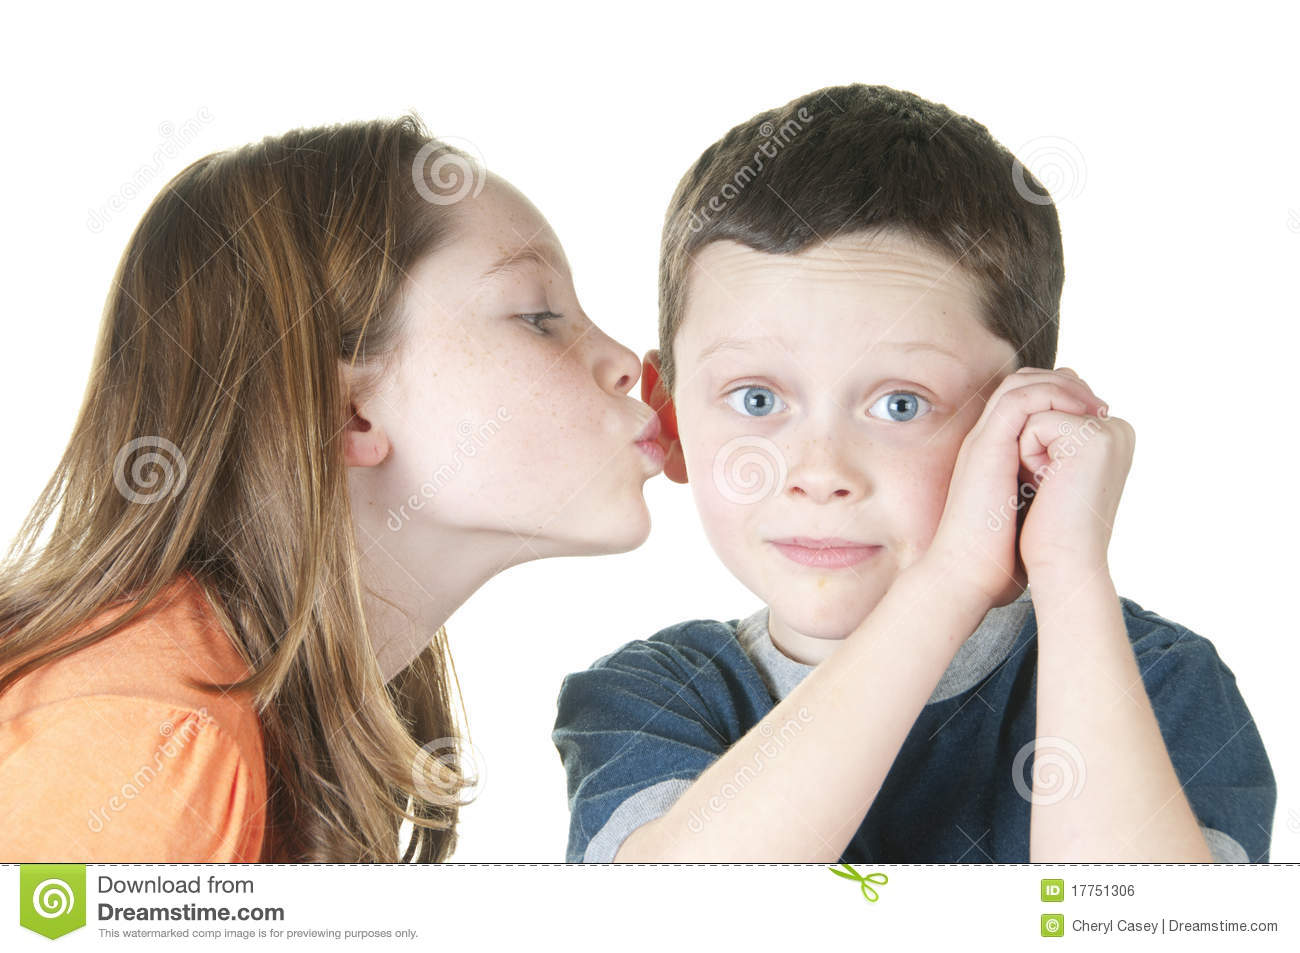 How to kiss a girl on cheek